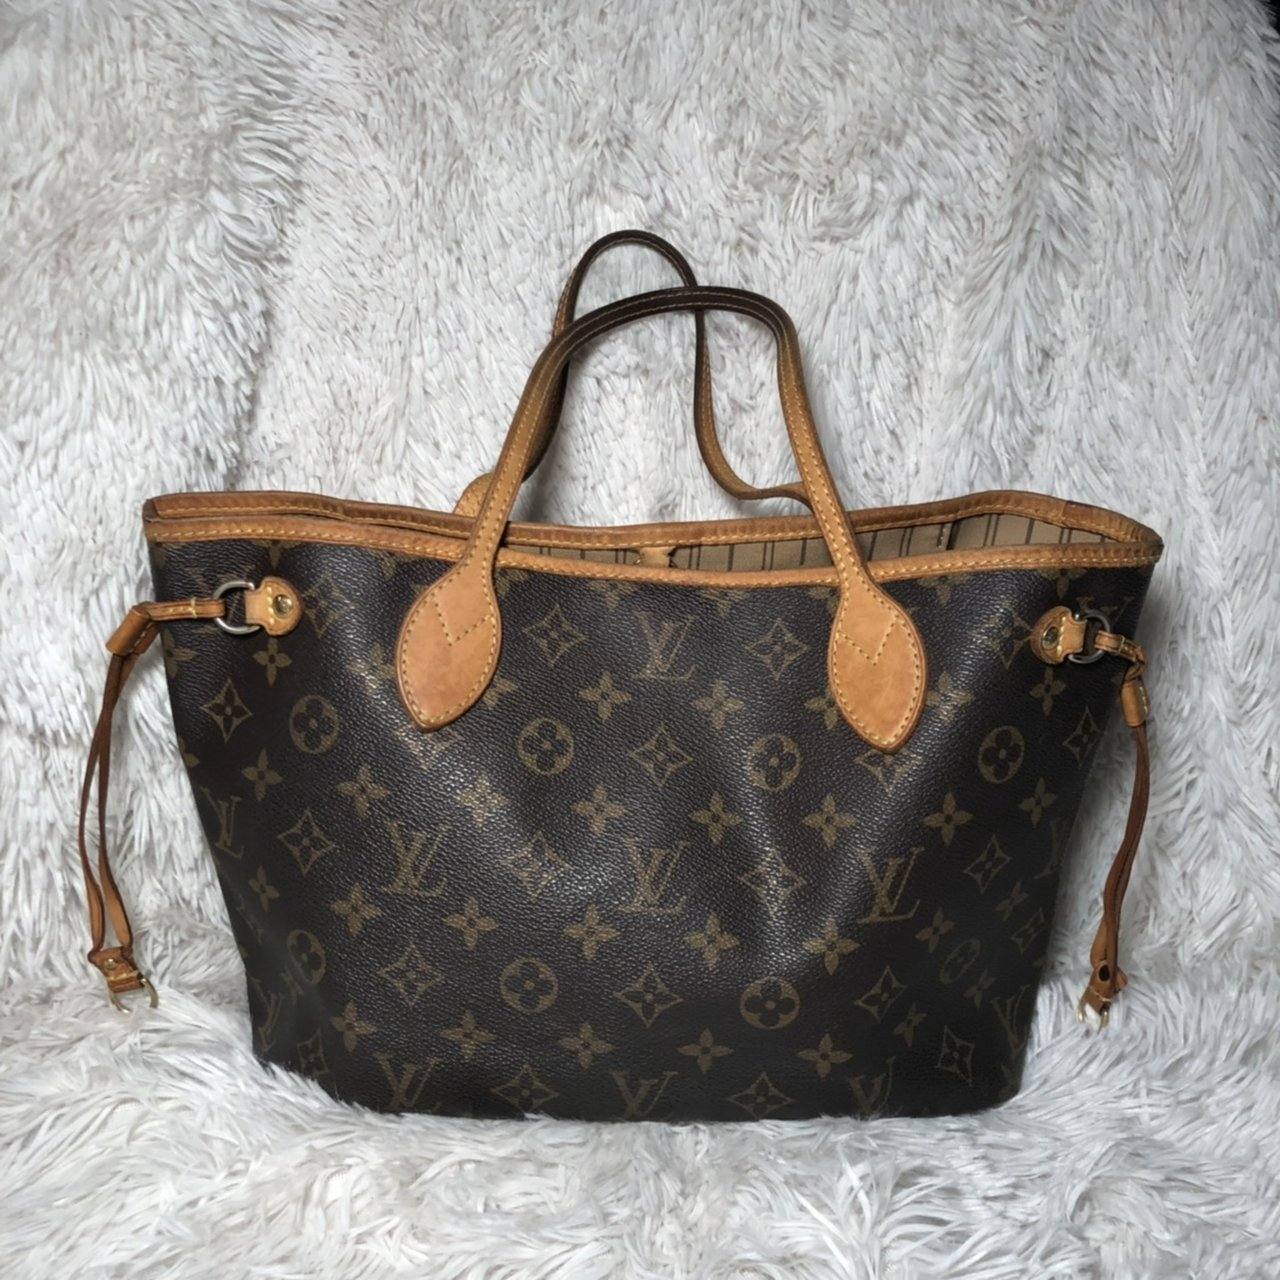 d2ee40494 @ashmmatrix. 3 months ago. Pringle, United States. Authentic Louis Vuitton  neverfull pm